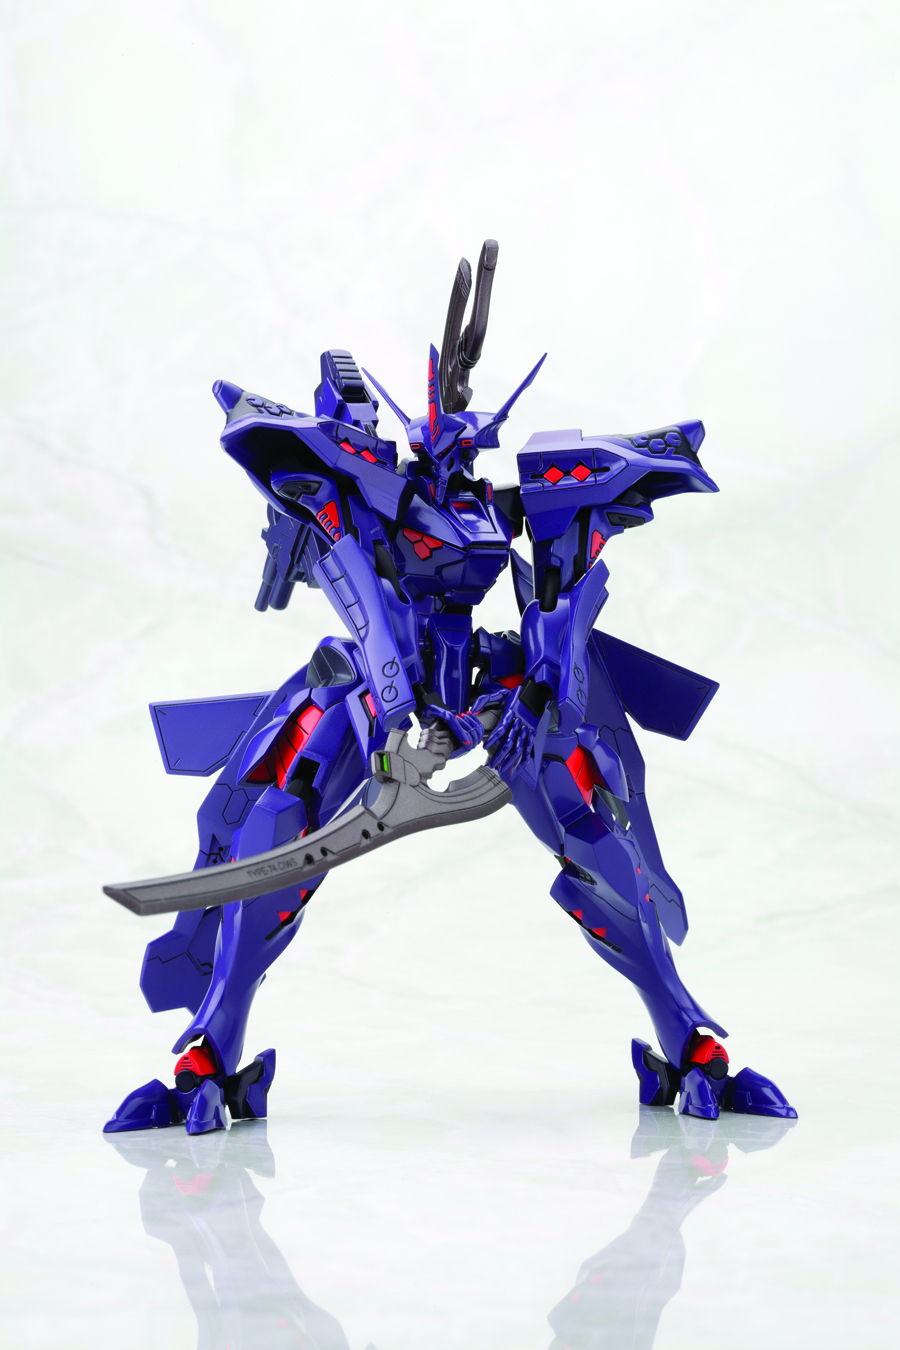 MUV-LUV ALT TAKEMIKADUCHI TYPE 00R PLASTIC MDL KIT